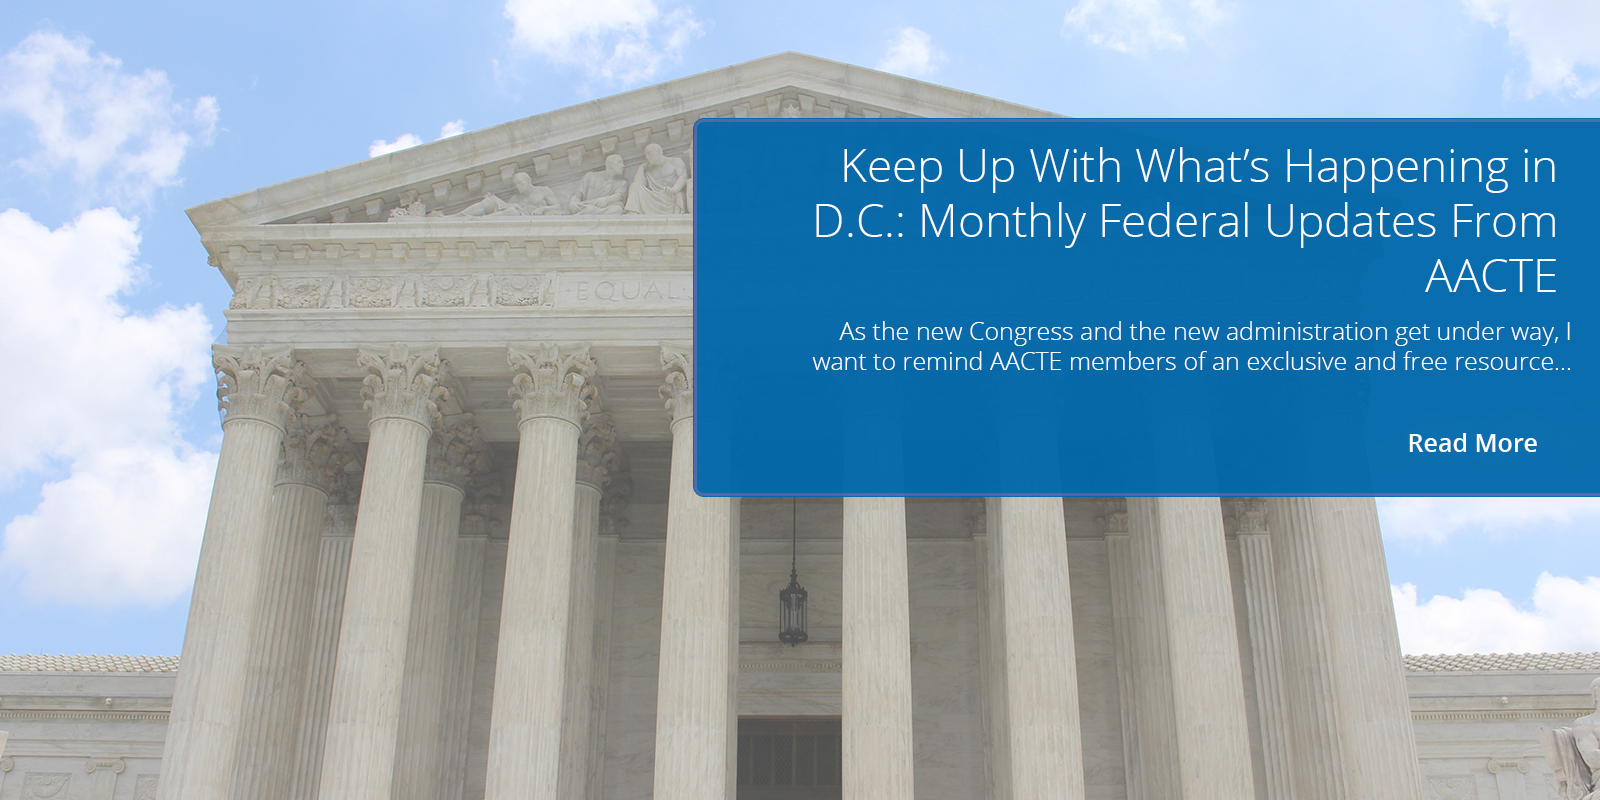 Keep Up With What's Happening in D.C.: Monthly Federal Updates From AACTE